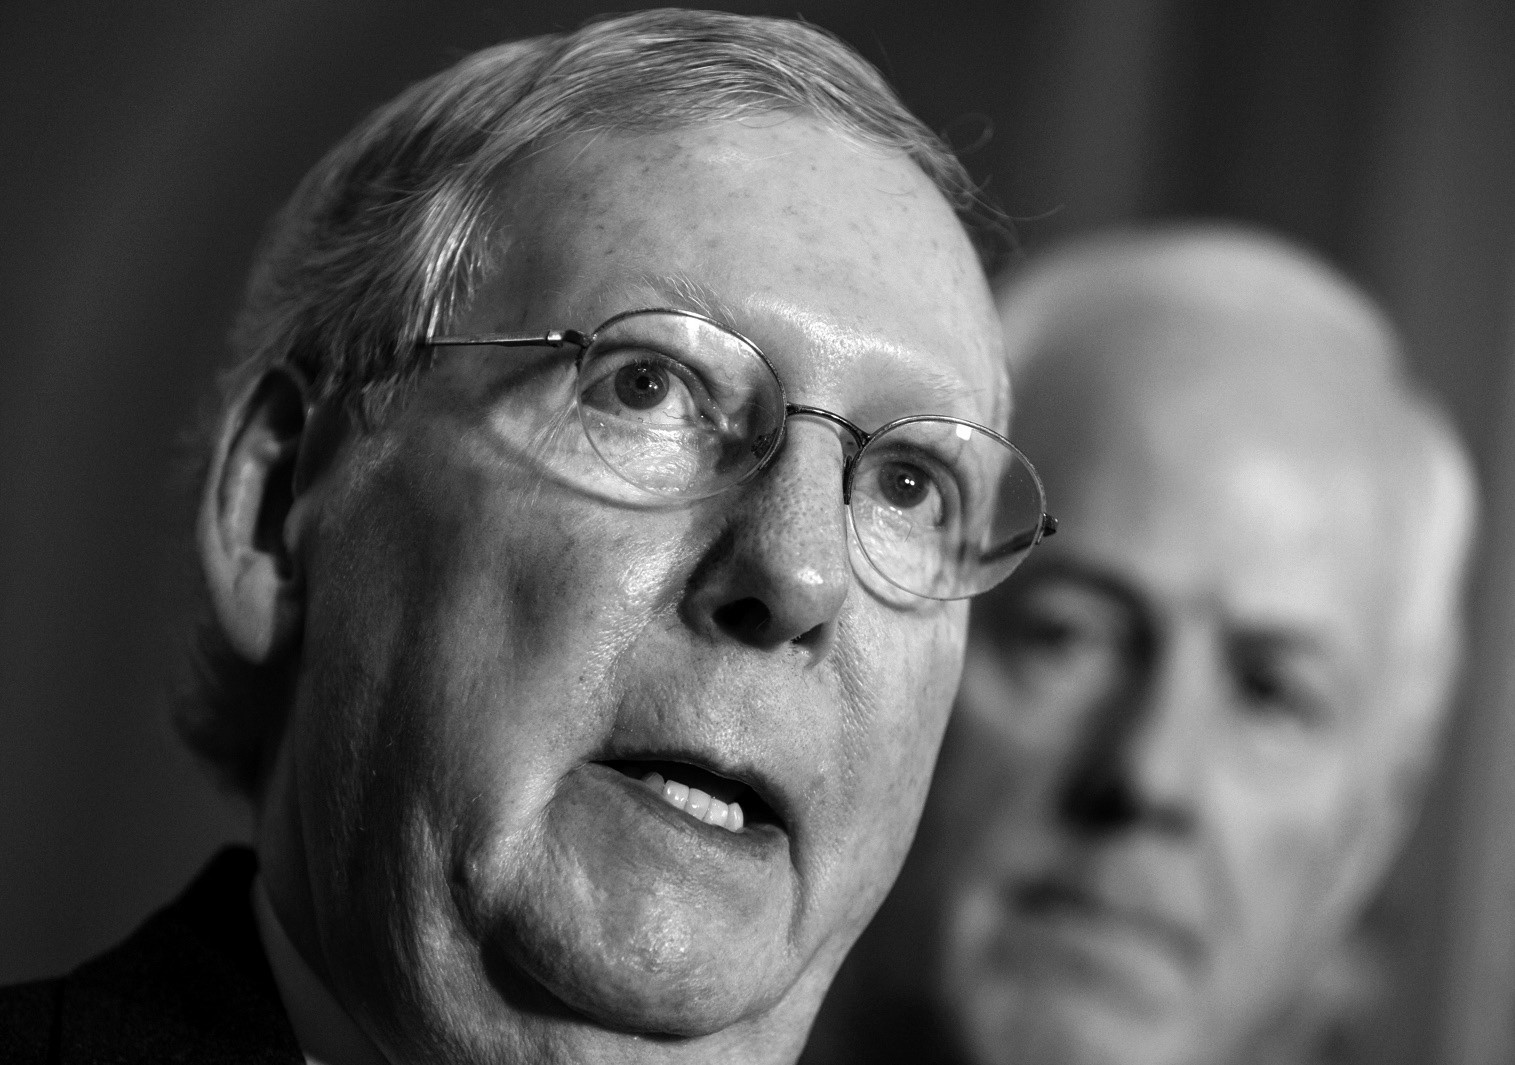 Senate Majority Leader Mitch McConnell of Ky., joined by Senate Majority Whip John Cornyn of Texas, tells reporters that he's confident he will have enough support on an effort to repeal the Affordable Care Act this week during a news conference following a GOP policy meeting on Capitol Hill in Washington.